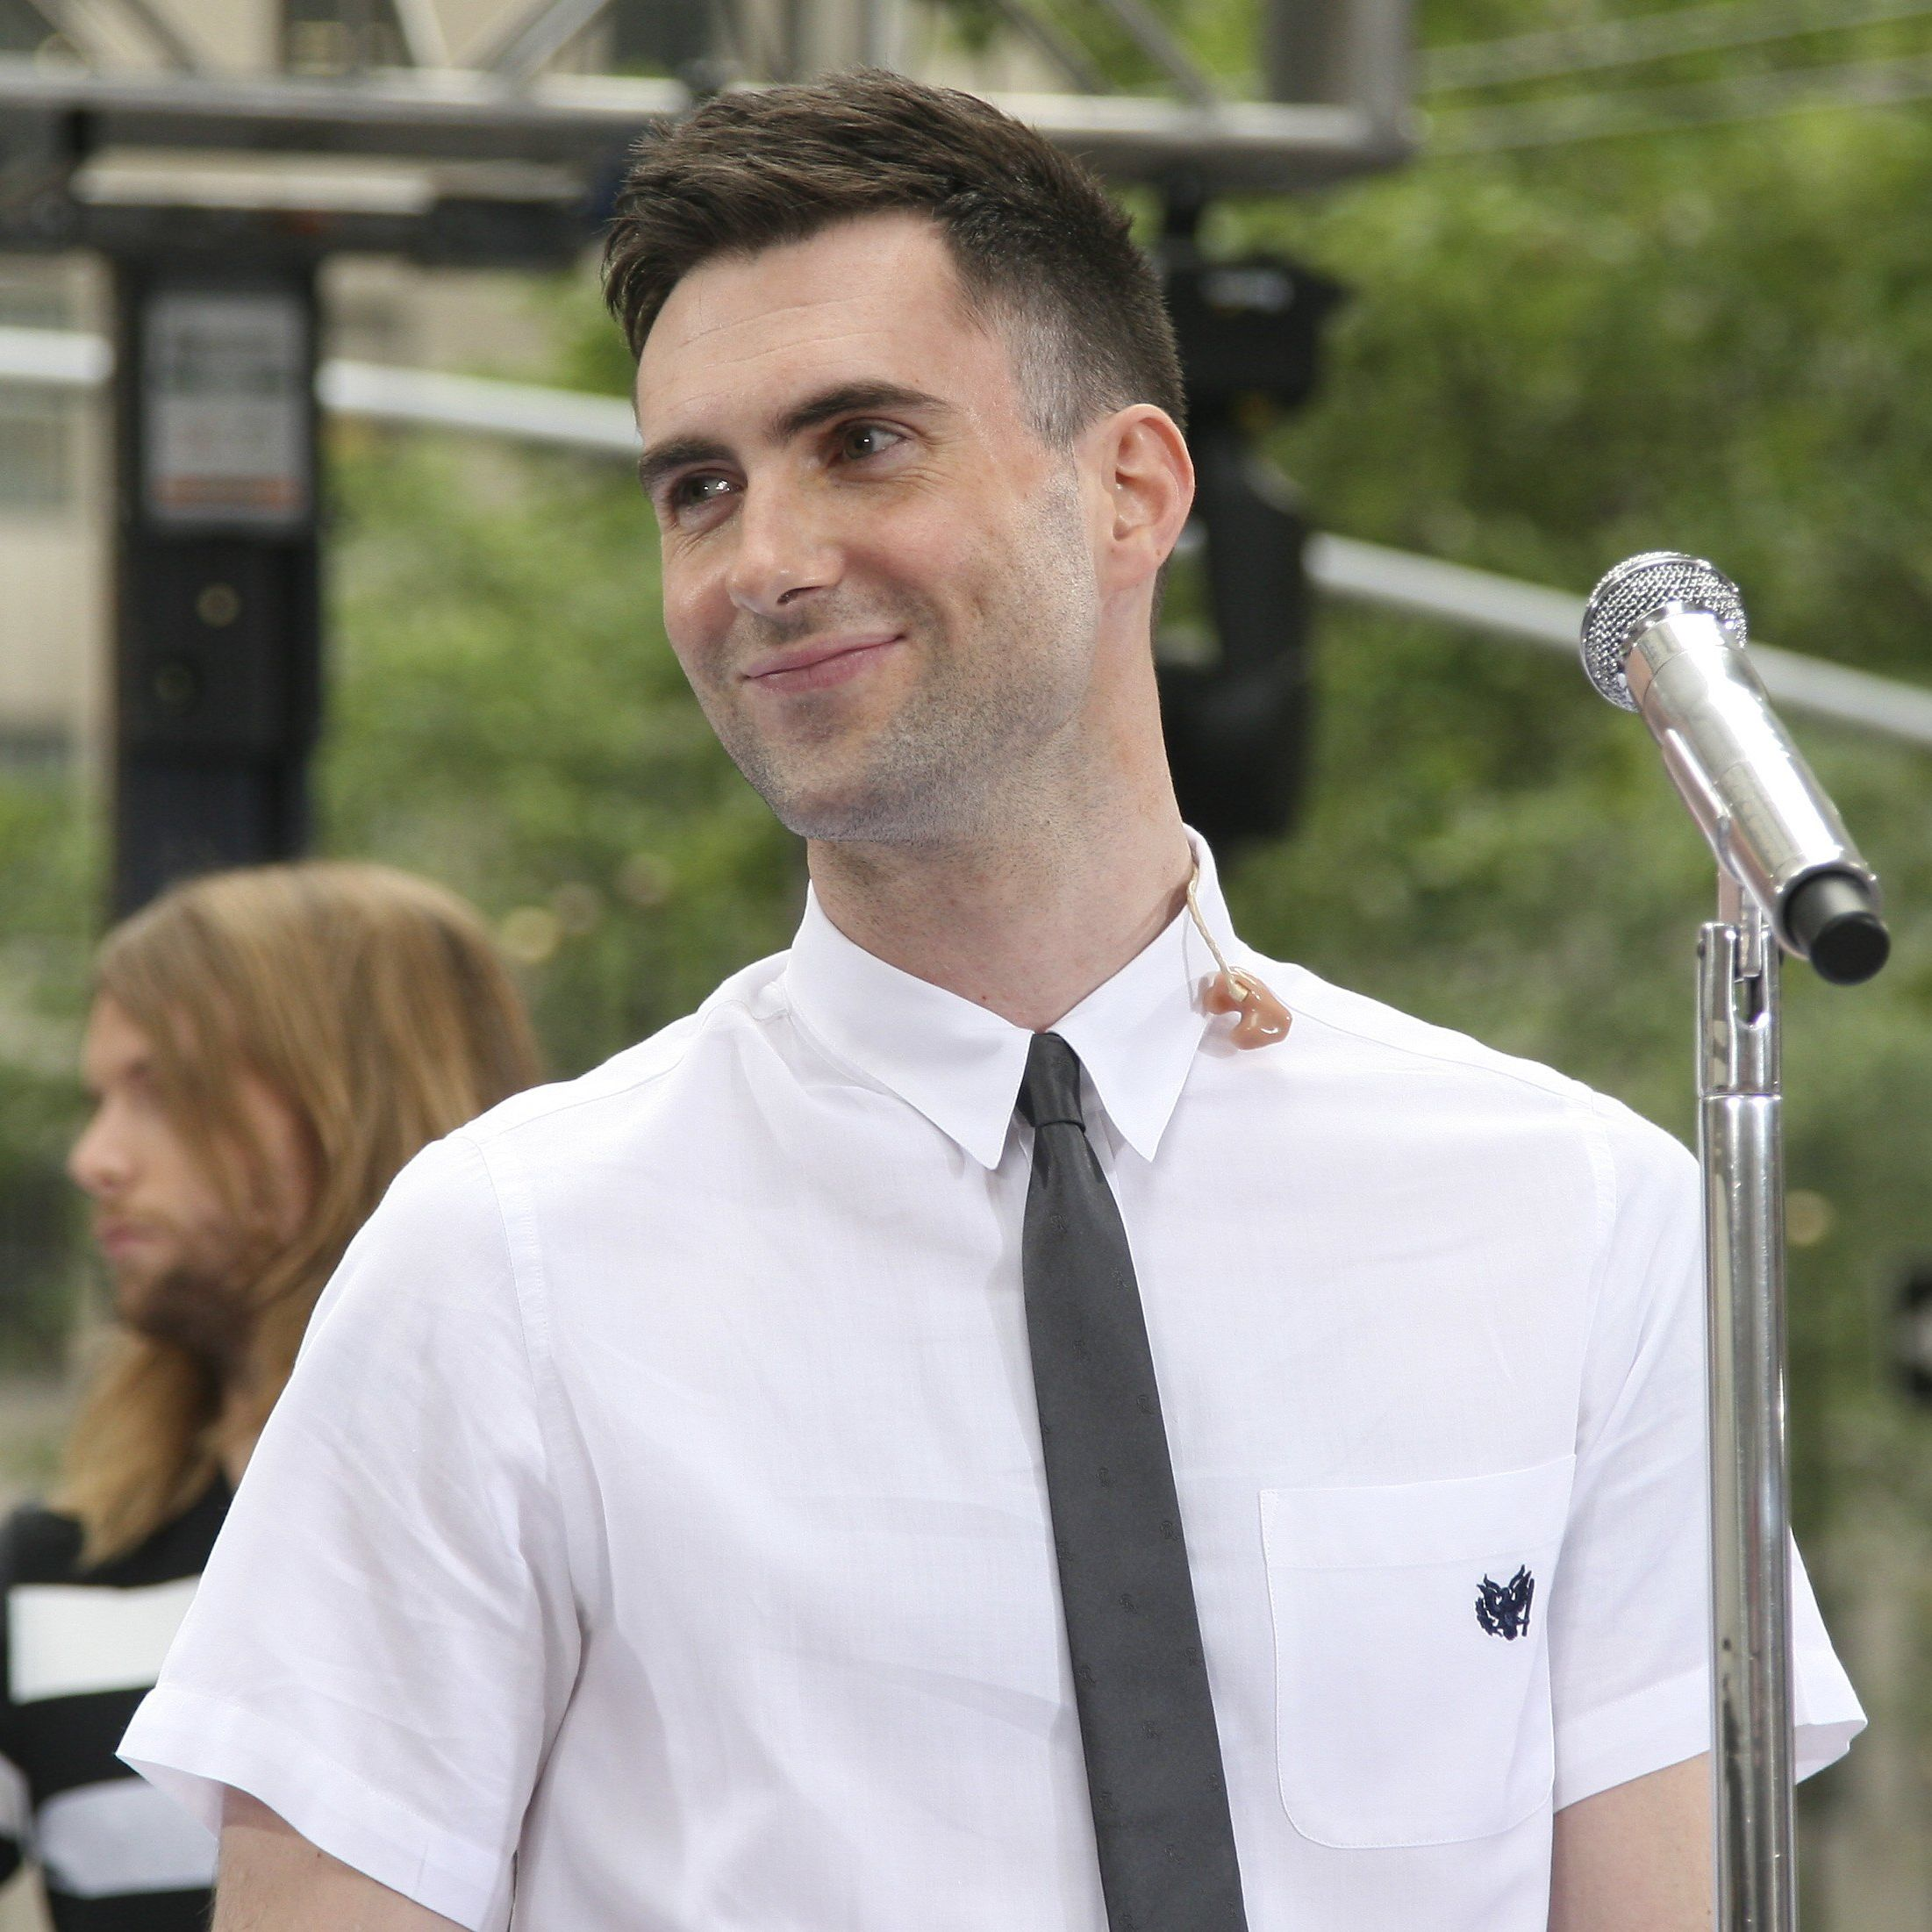 """Adam's dad, Fred, a lawyer turned retailer, founded the L.A. clothing store M. Frederic with his sister, Mardi (the """"M"""" of the title)—a background which may explain why his son's Mr. Rogers-meets-grunge clothing line for KMart is the big-box store's most successful celebrity line ever. Adam went to the Brentwood School, whose tuition currently hovers around $35,000 (seems like he should have had change enough for a payphone), with the actor Jonah Hill and four bandmates who, with the addition of a crucial fifth, would later became Maroon 5."""